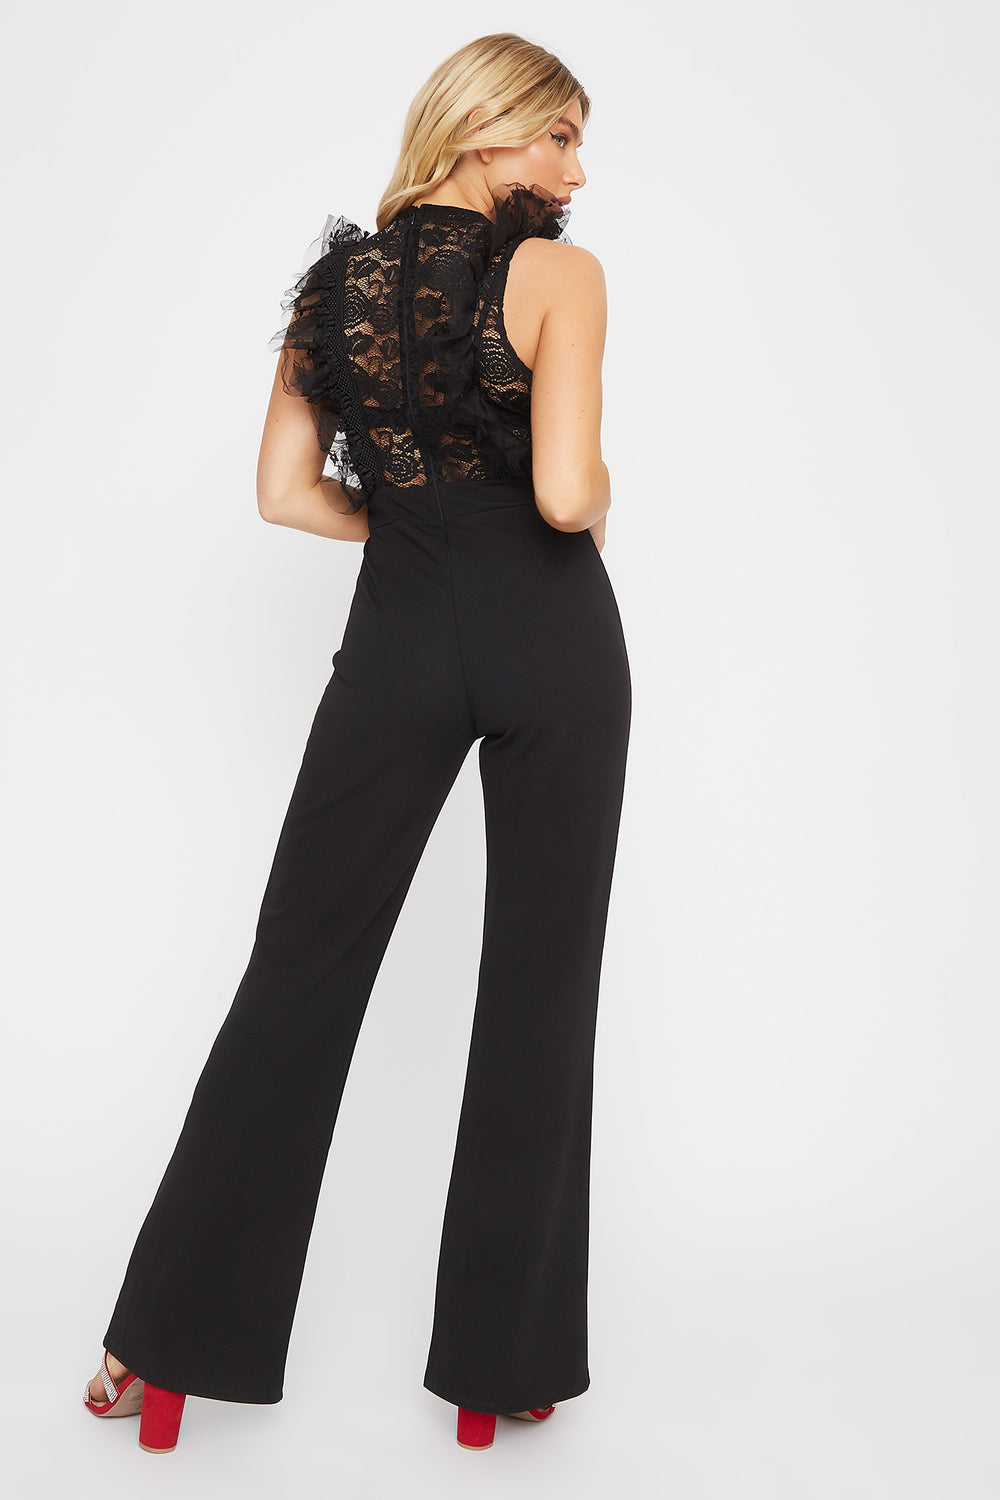 Lace V-Neck Sleeveless Jumpsuit Black